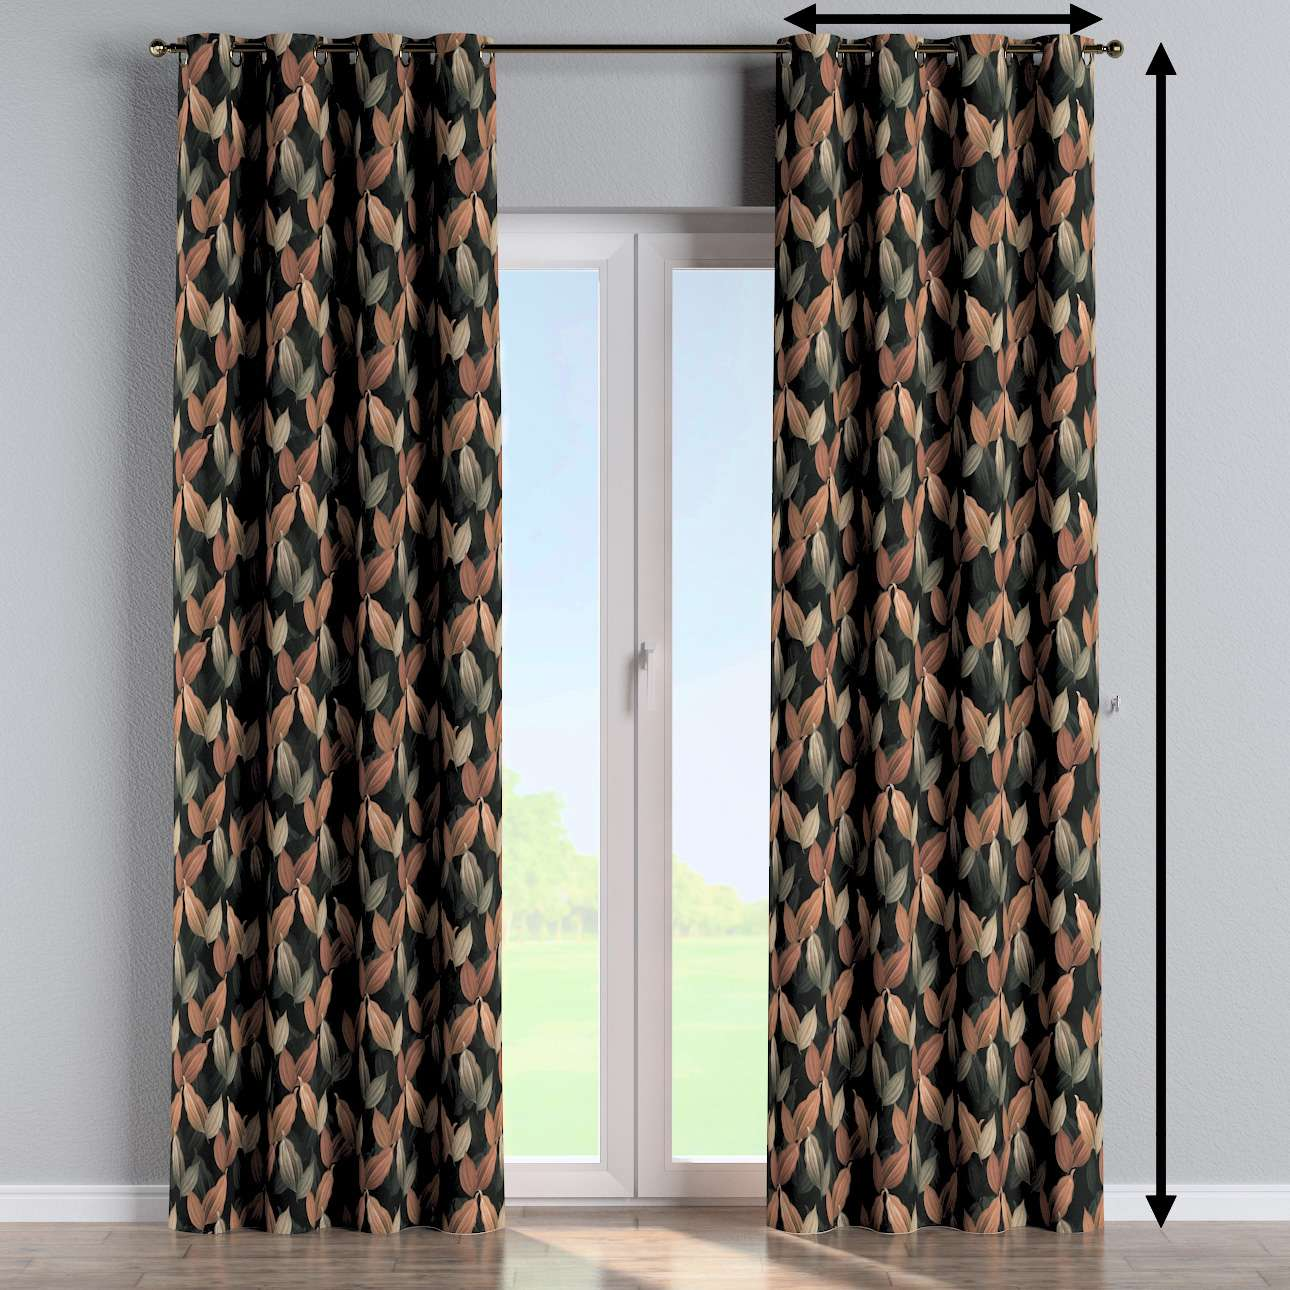 Eyelet curtain in collection Abigail, fabric: 143-21